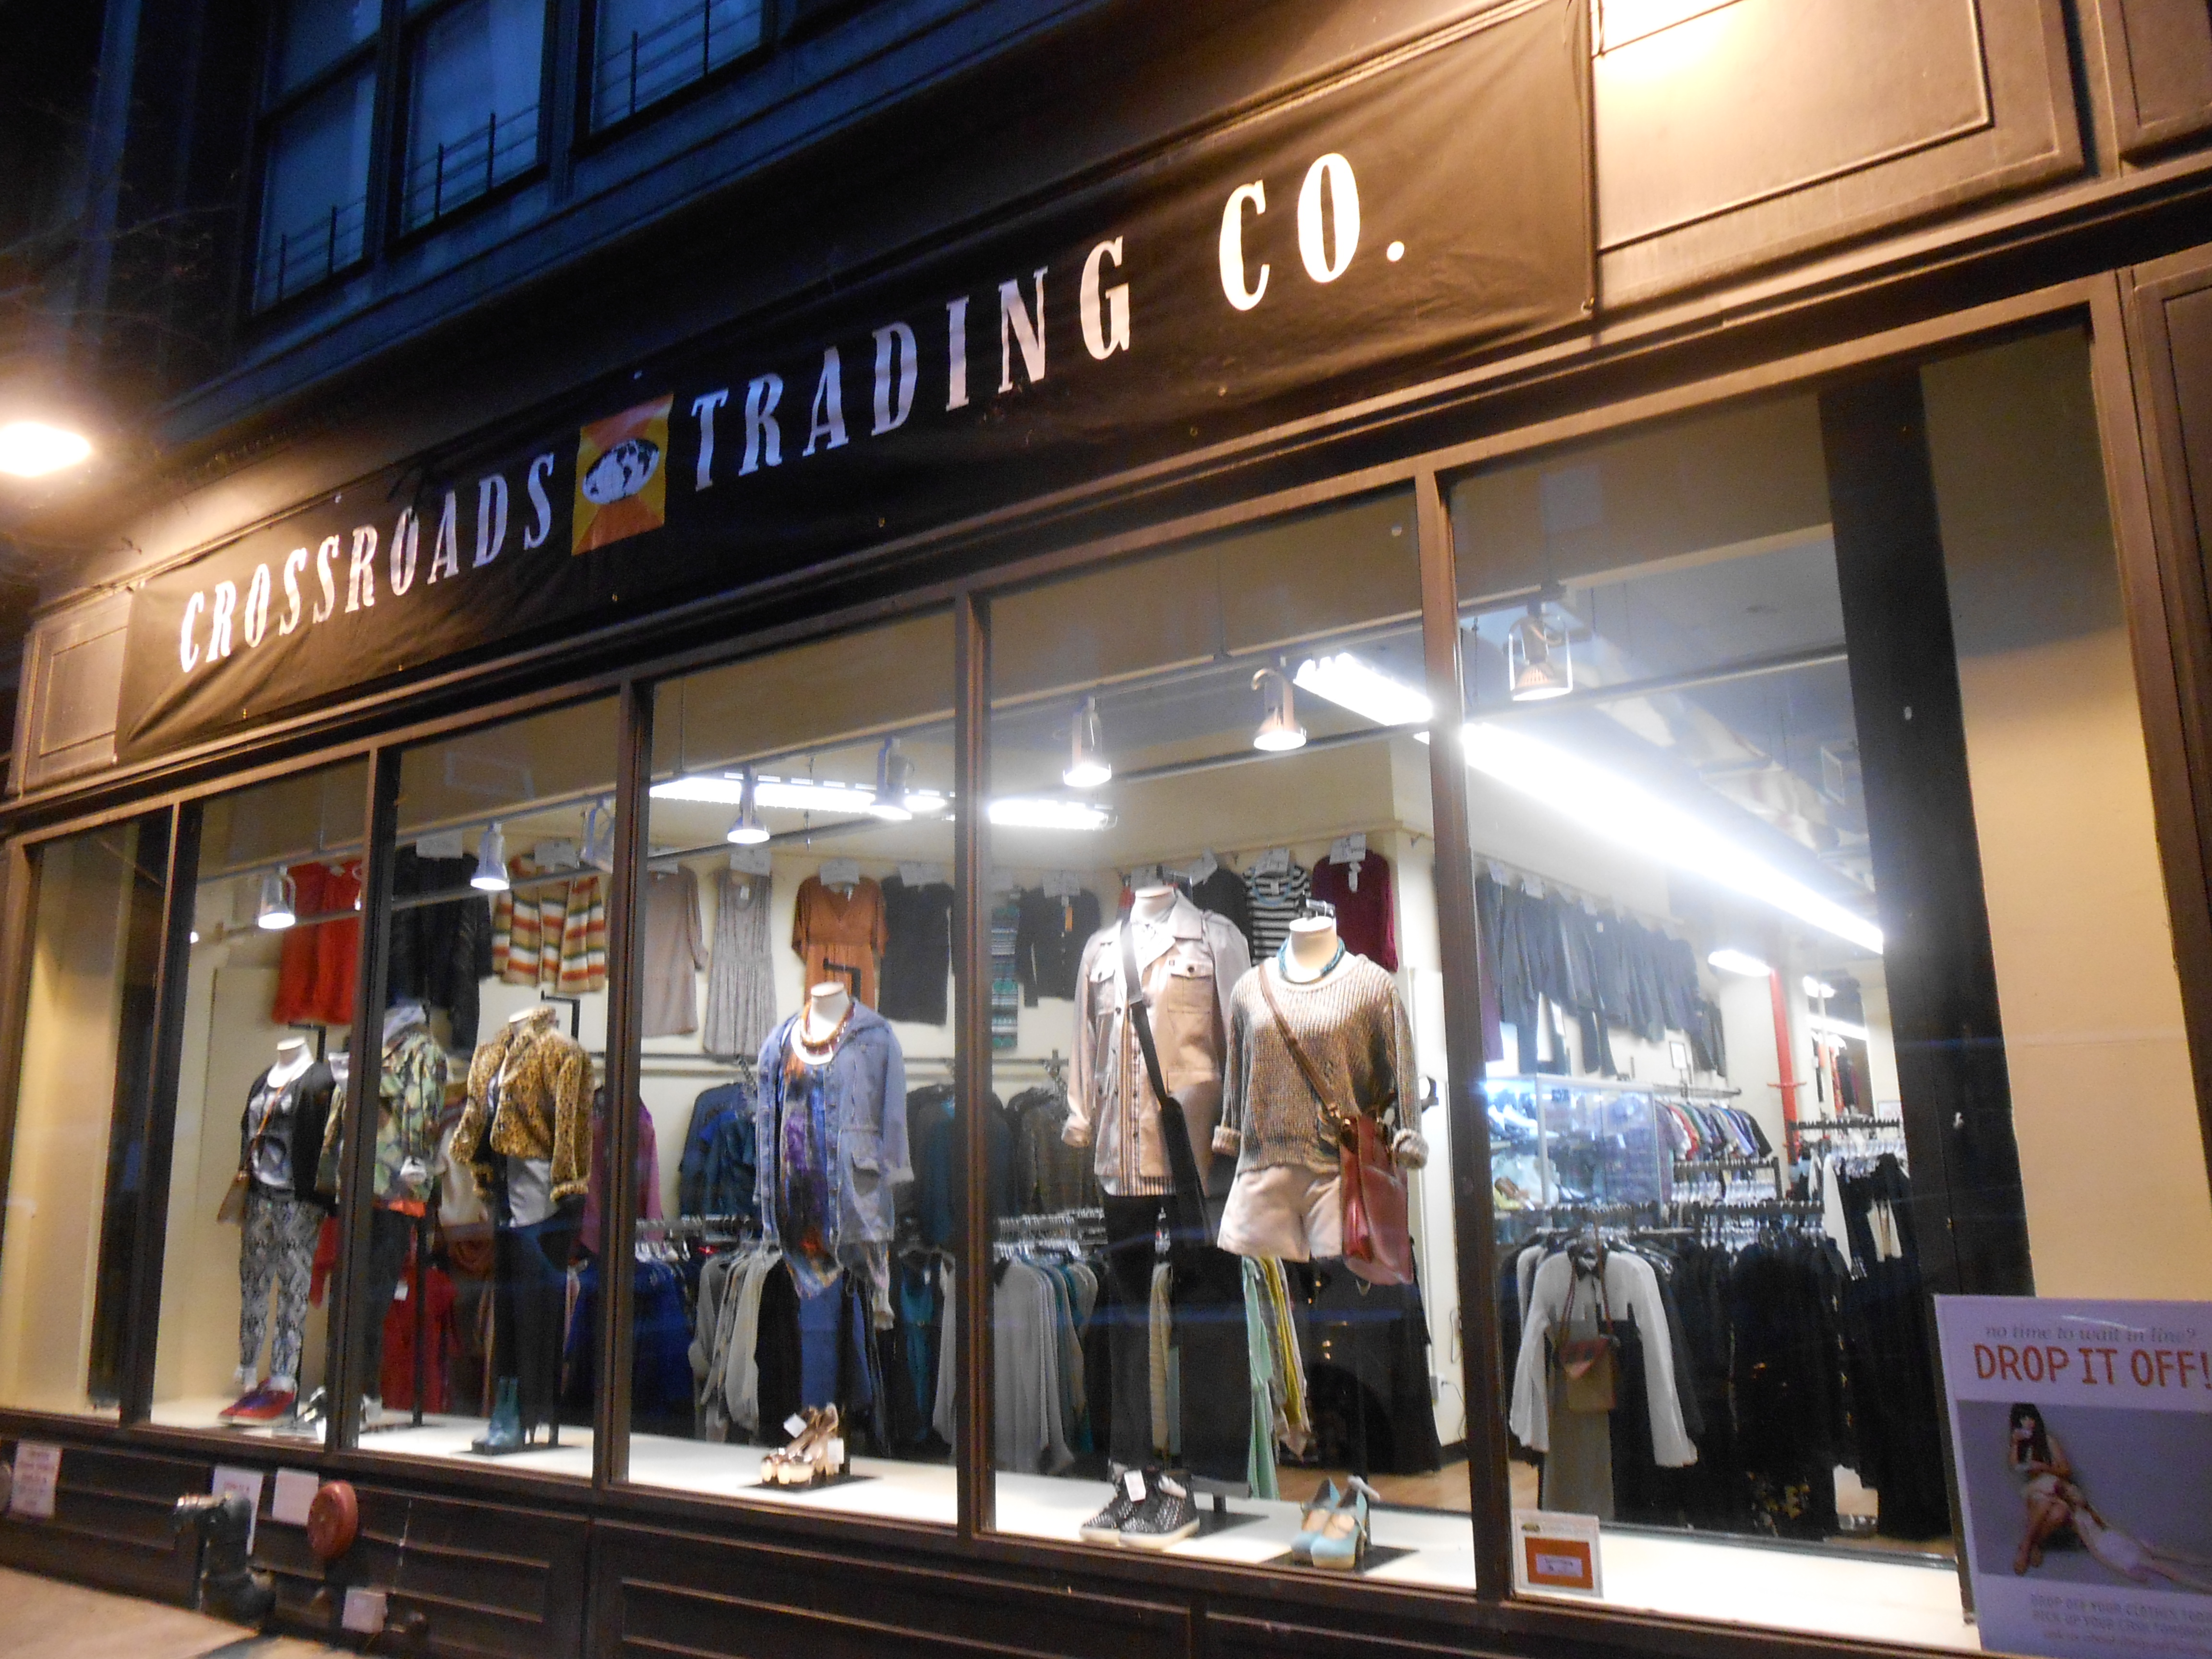 Traders clothing store